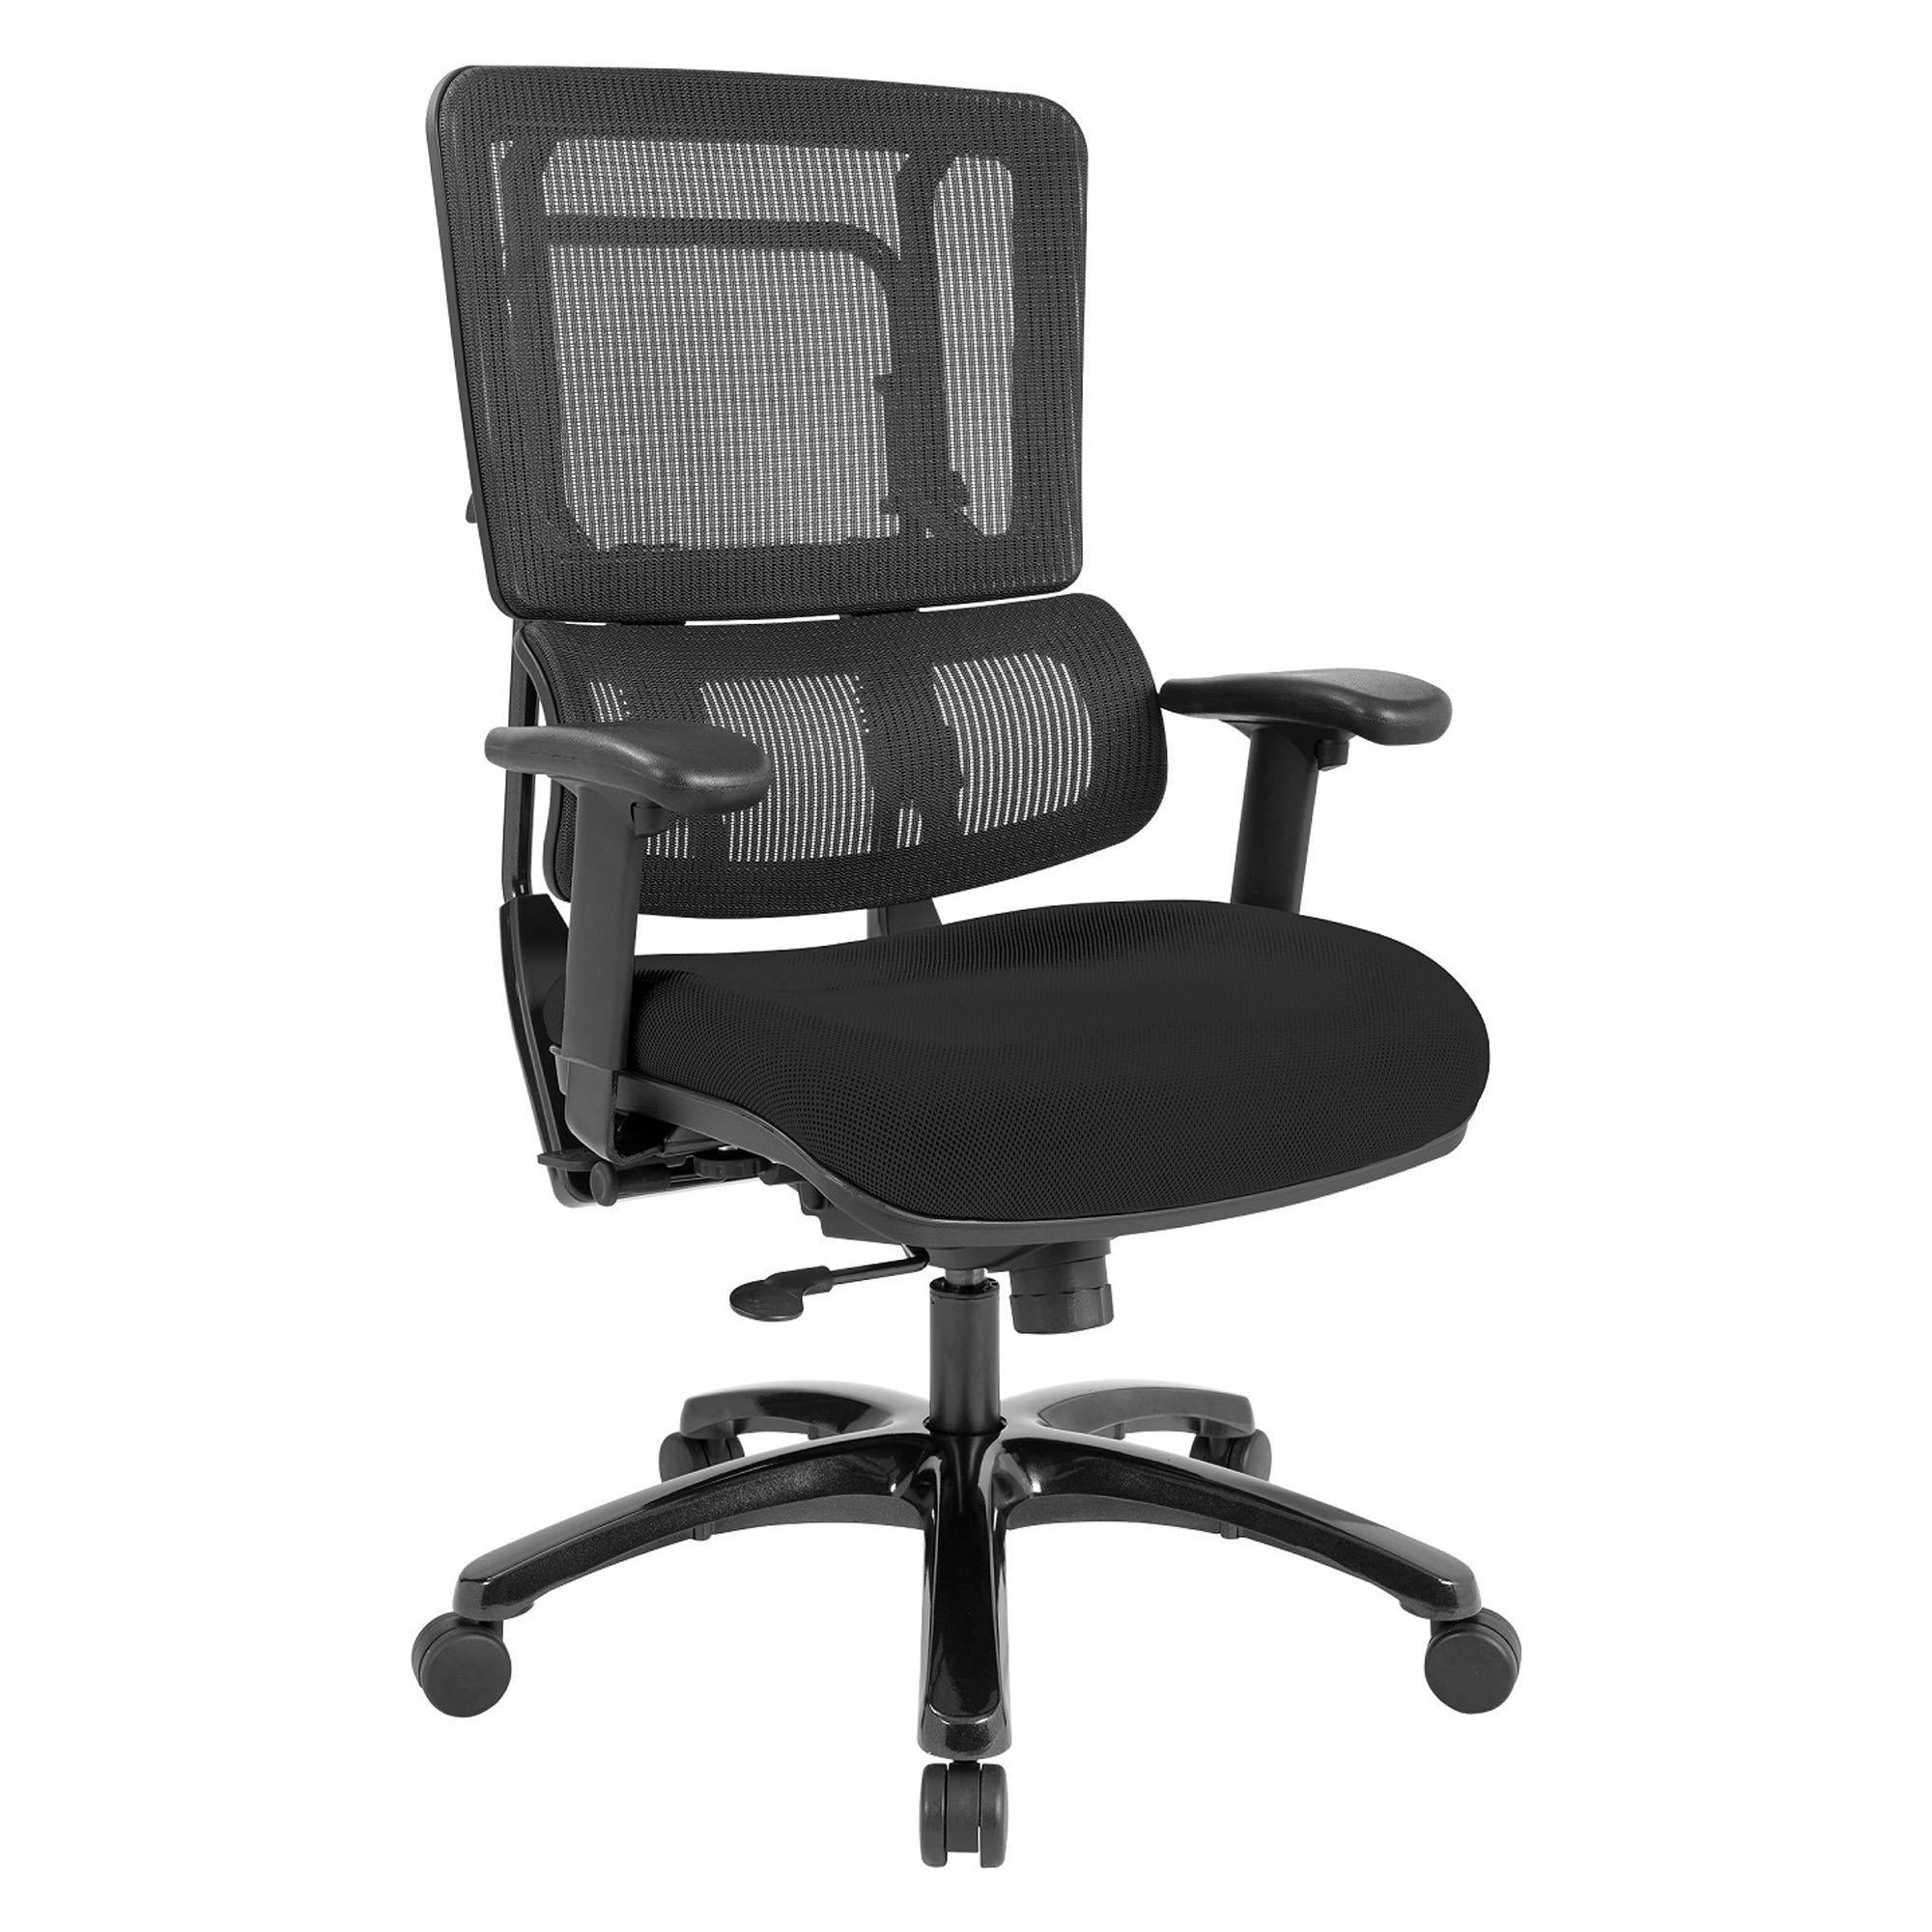 ProX996 Series Mesh Back Chair